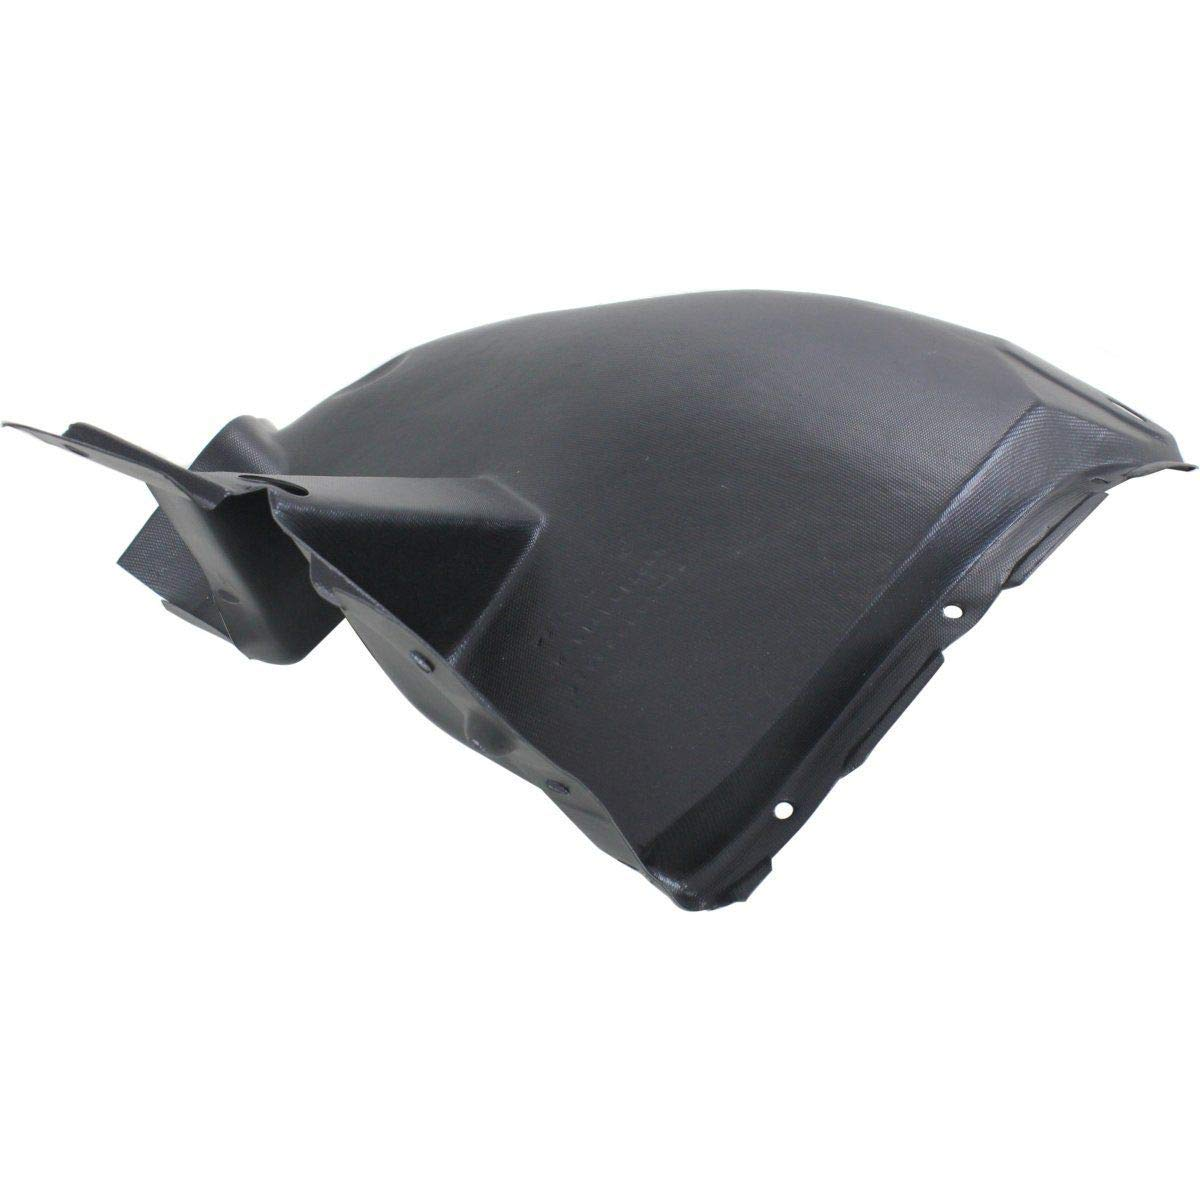 Splash Shield For 2003-2007 Cadillac CTS Front, Driver Side Front Section Parts Galaxy